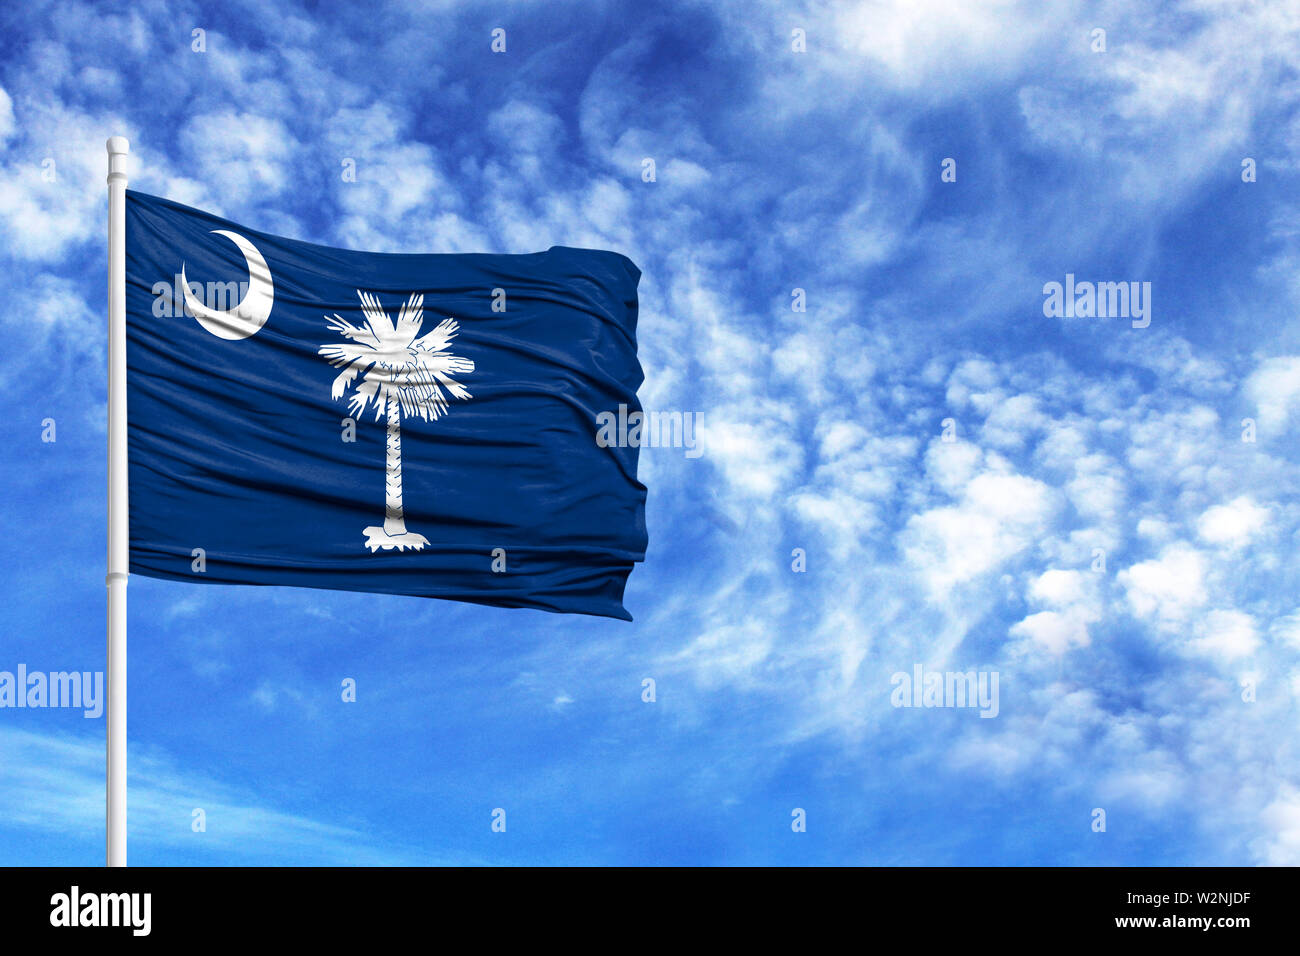 National flag State of South Carolina on a flagpole in front of blue sky - Stock Image